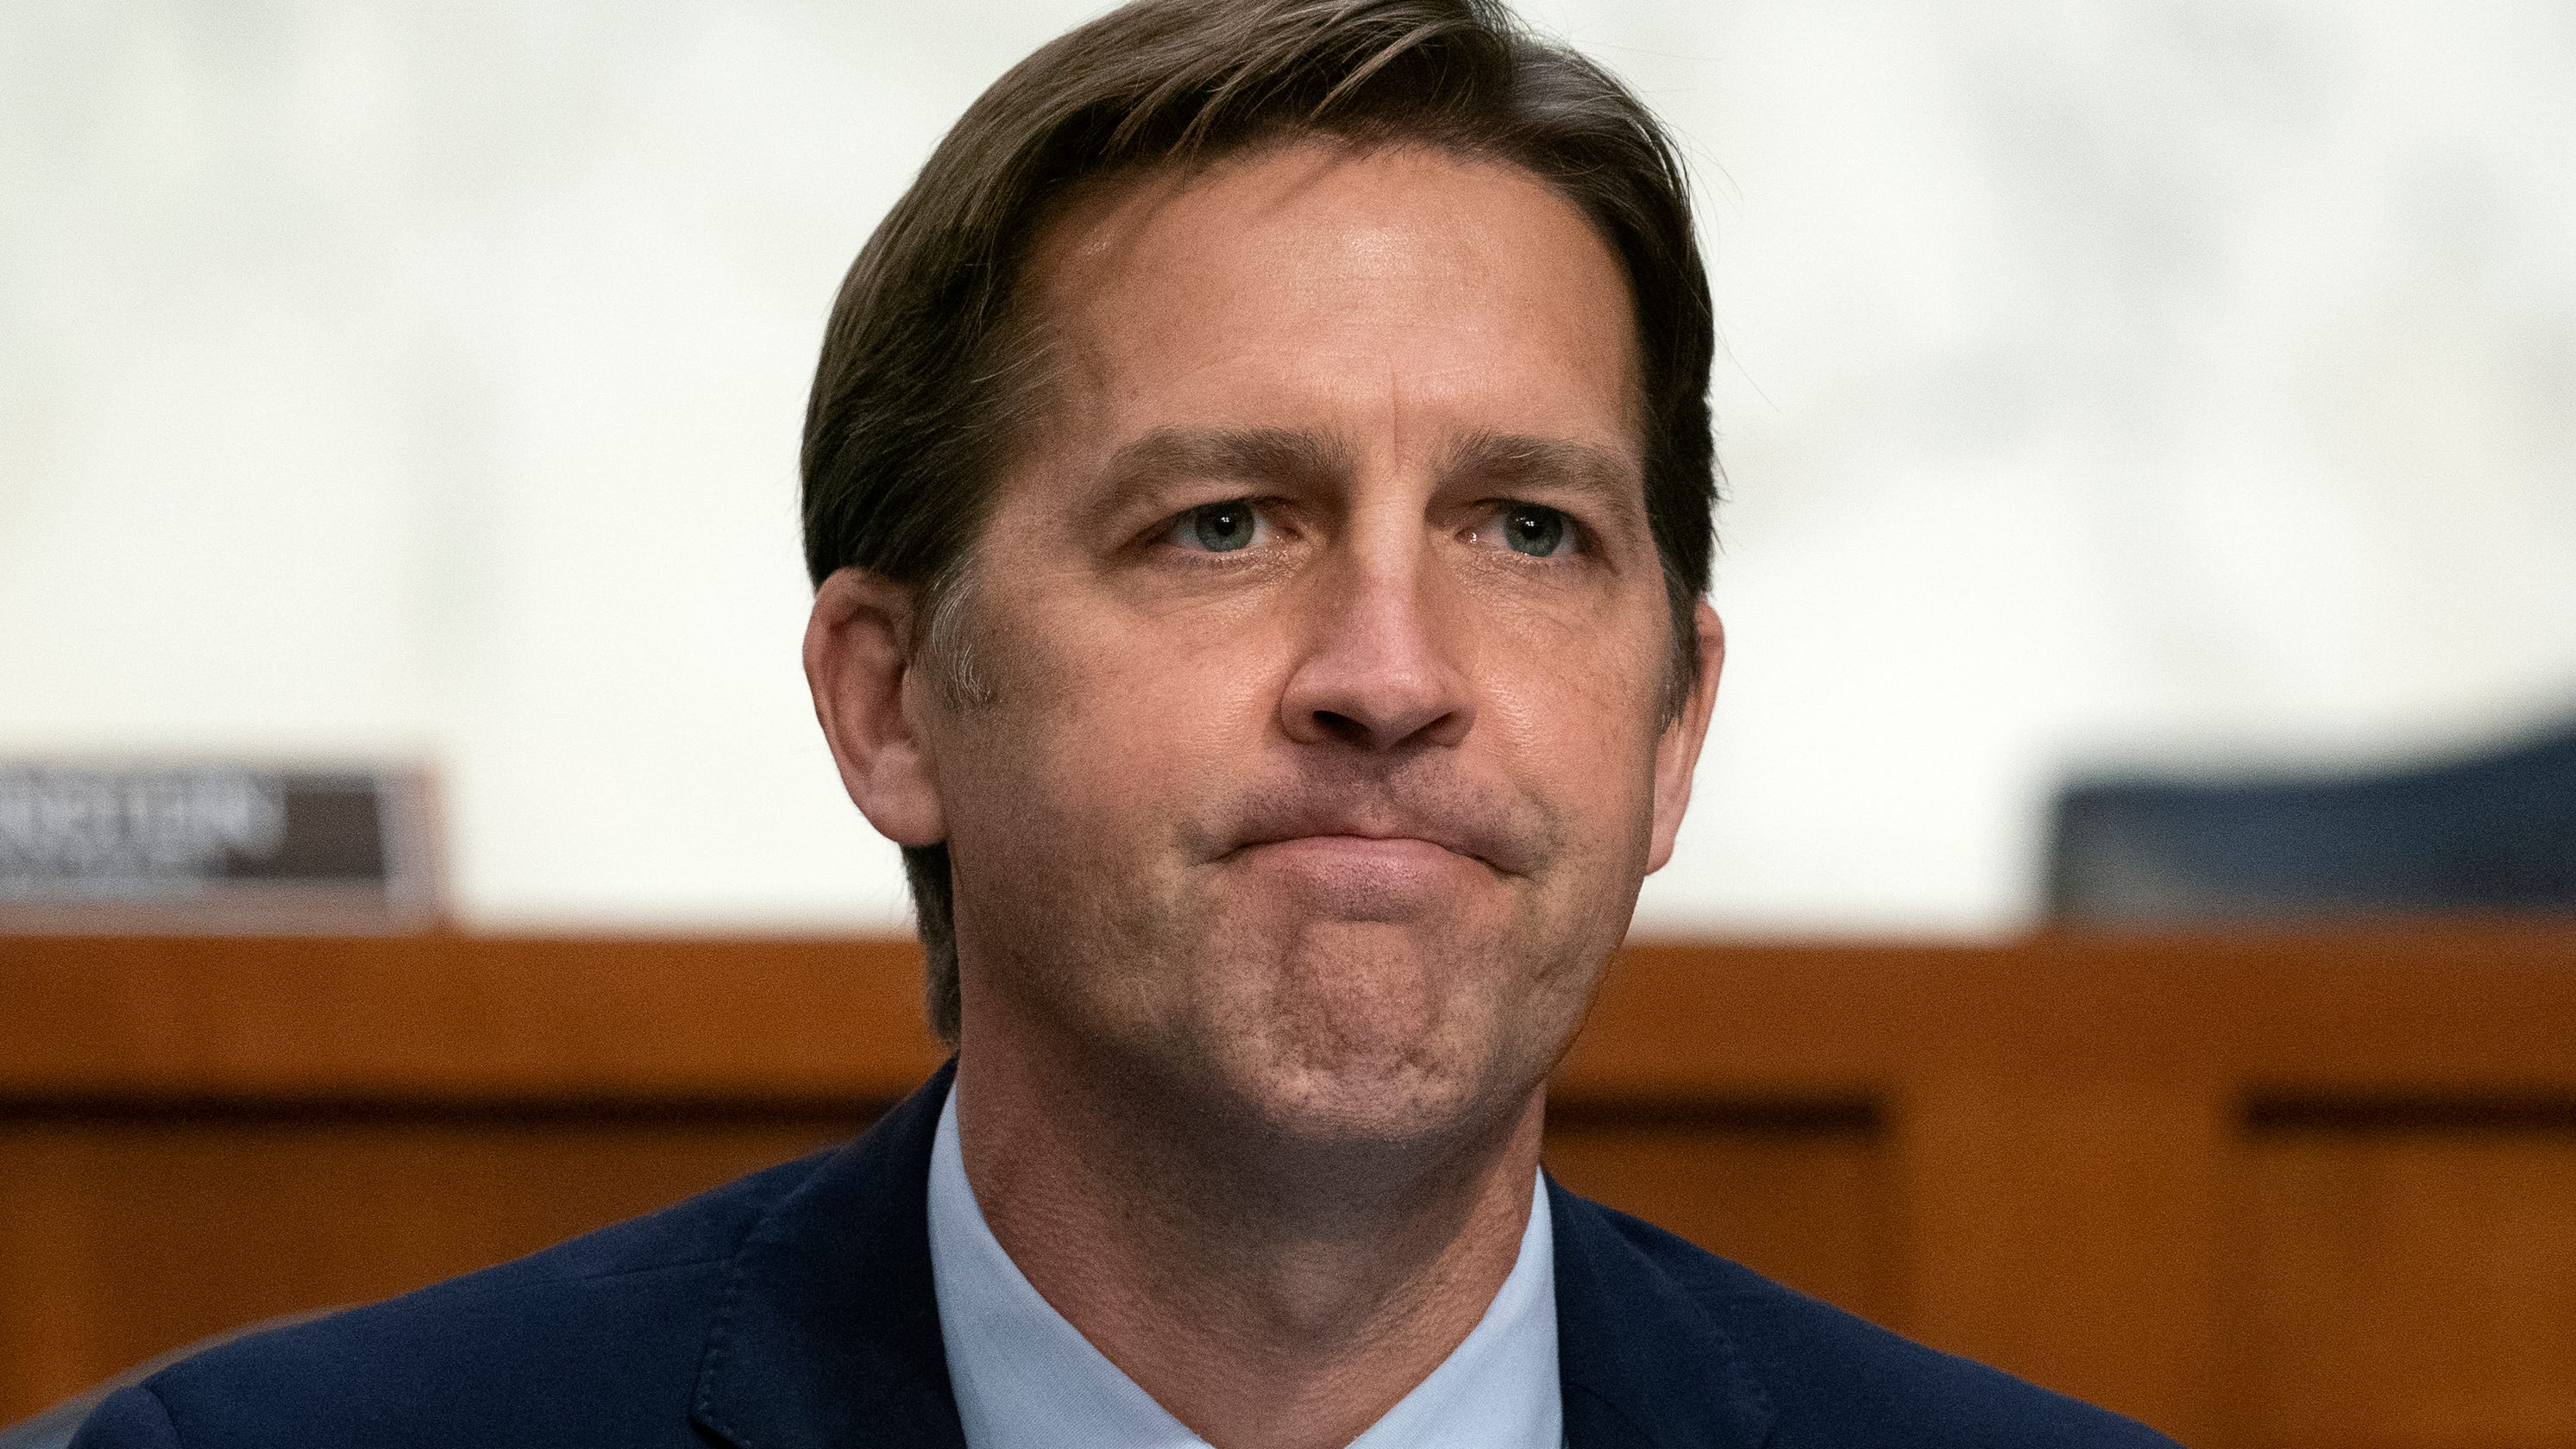 'Not going to waste a single minute on tweets': GOP Sen. Sasse pushes back after Trump attacks – USA TODAY